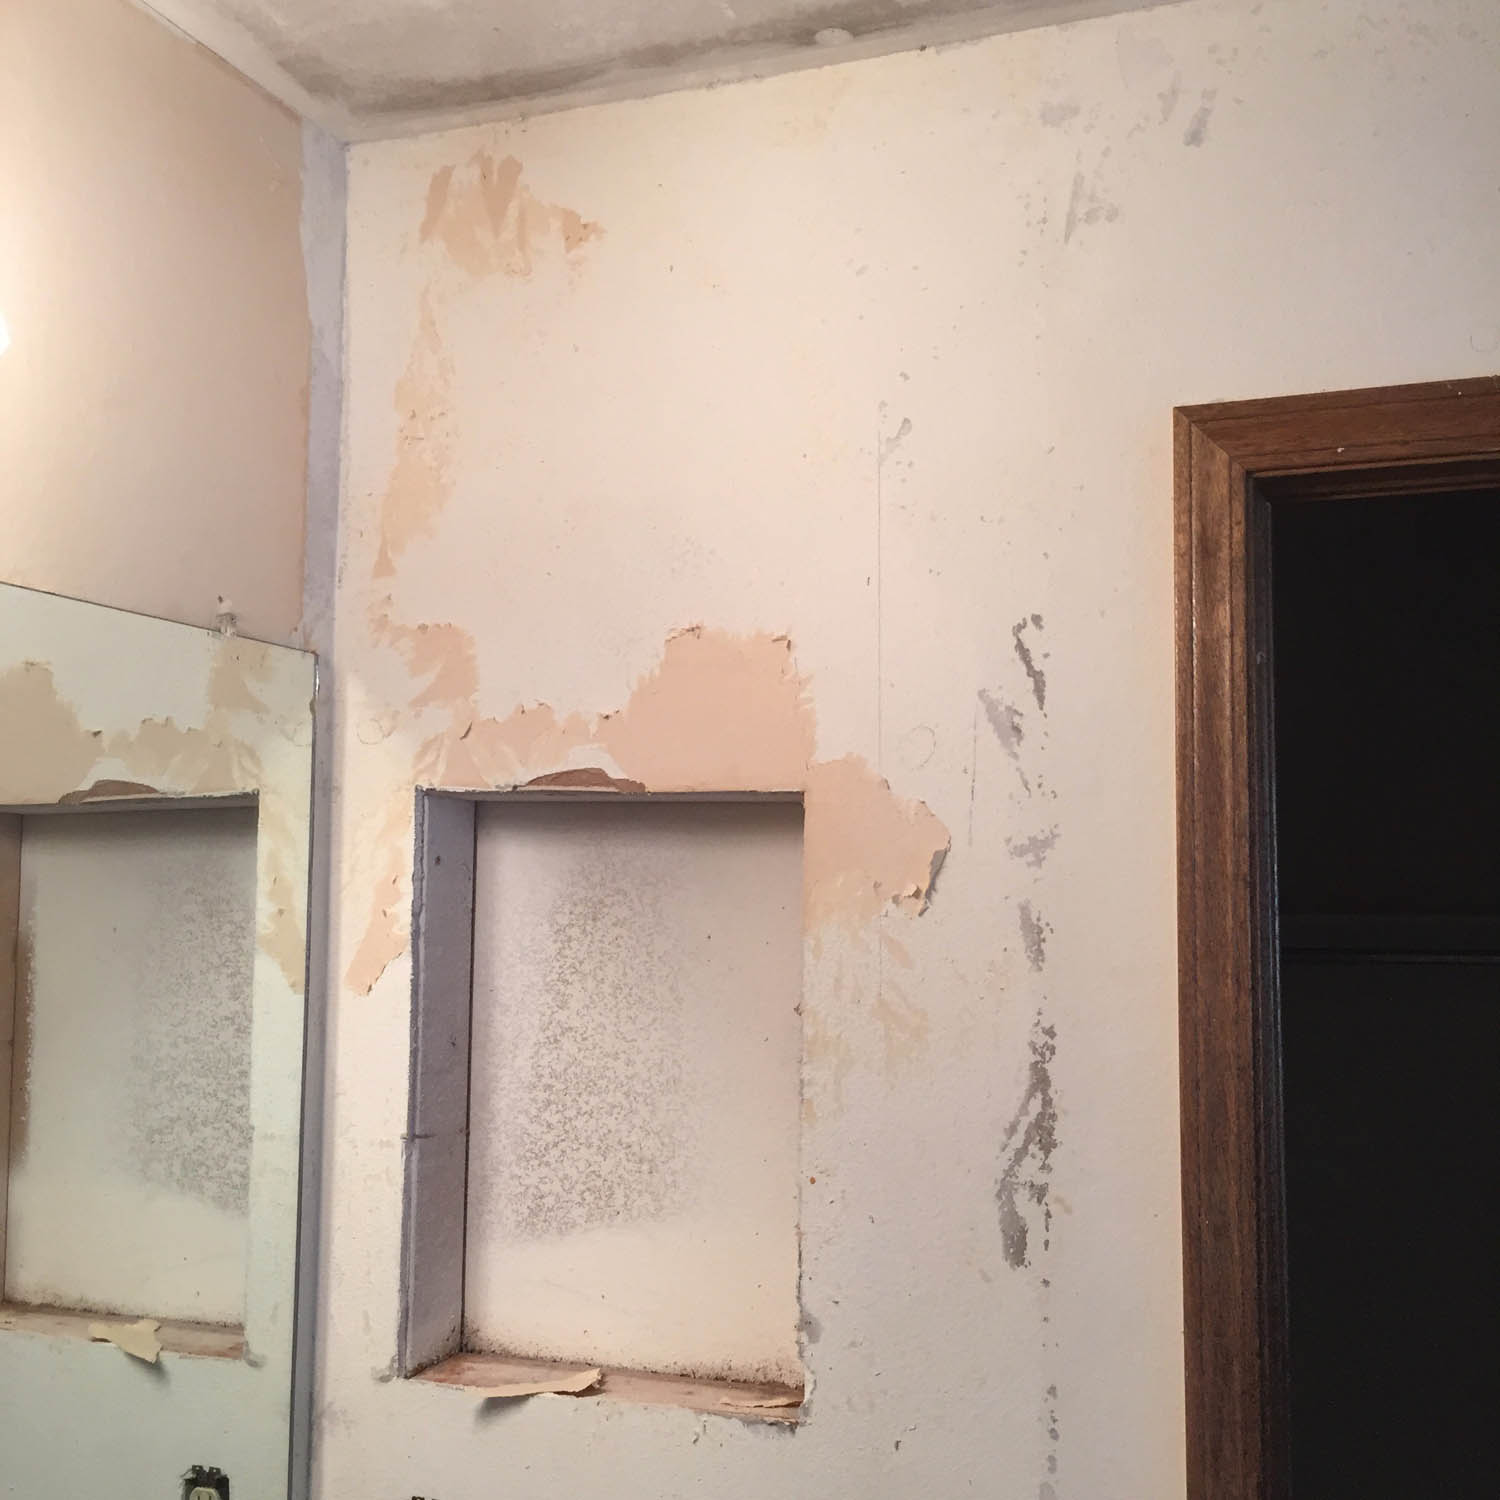 hole in the wall and wallpaper peeling